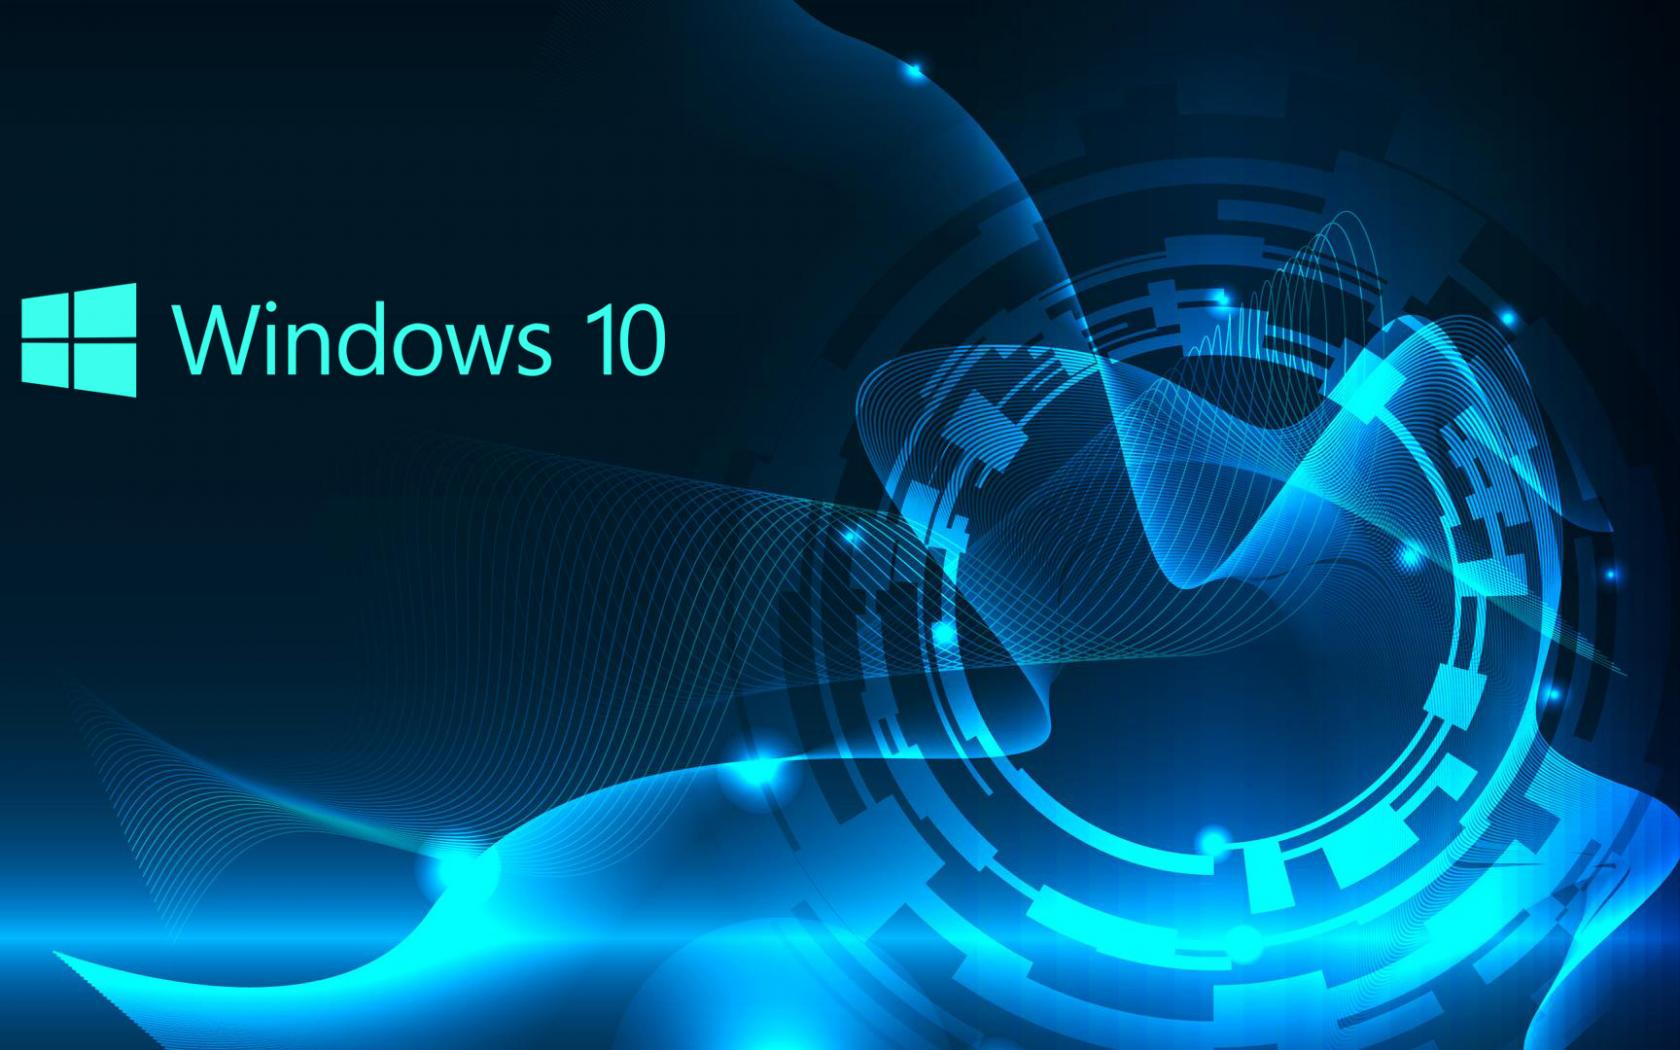 windows 10 wallpaper hd 1080p free download | hd wallpapers